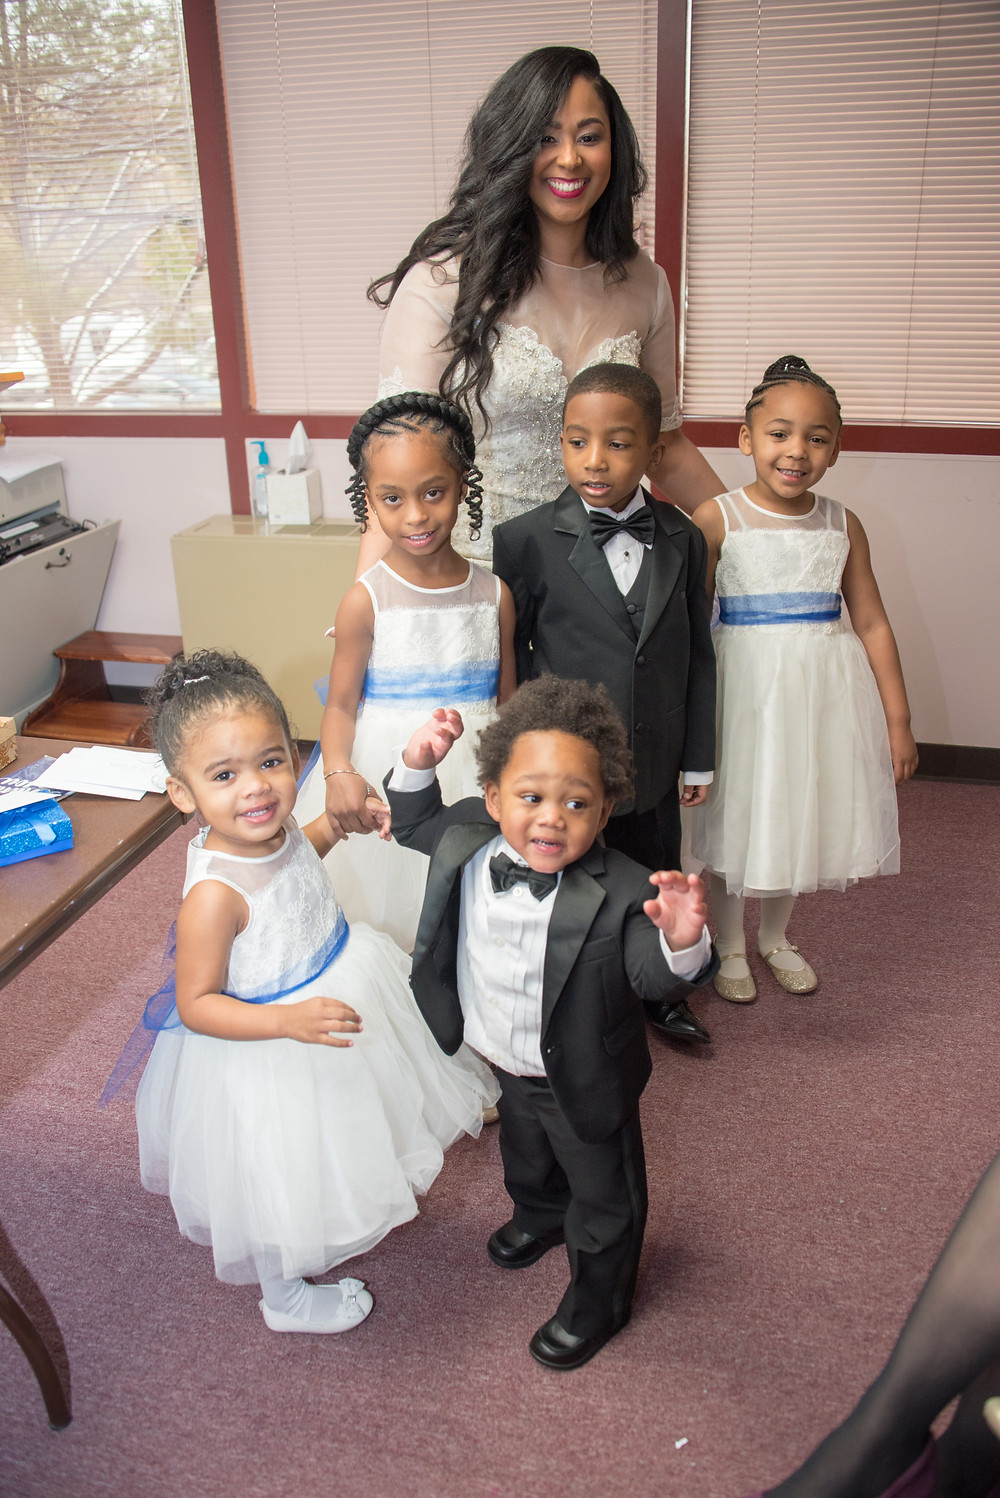 The bride poses with all of the children of the wedding before the ceremony at the Alfred Street Baptist Church in Alexandria VA.